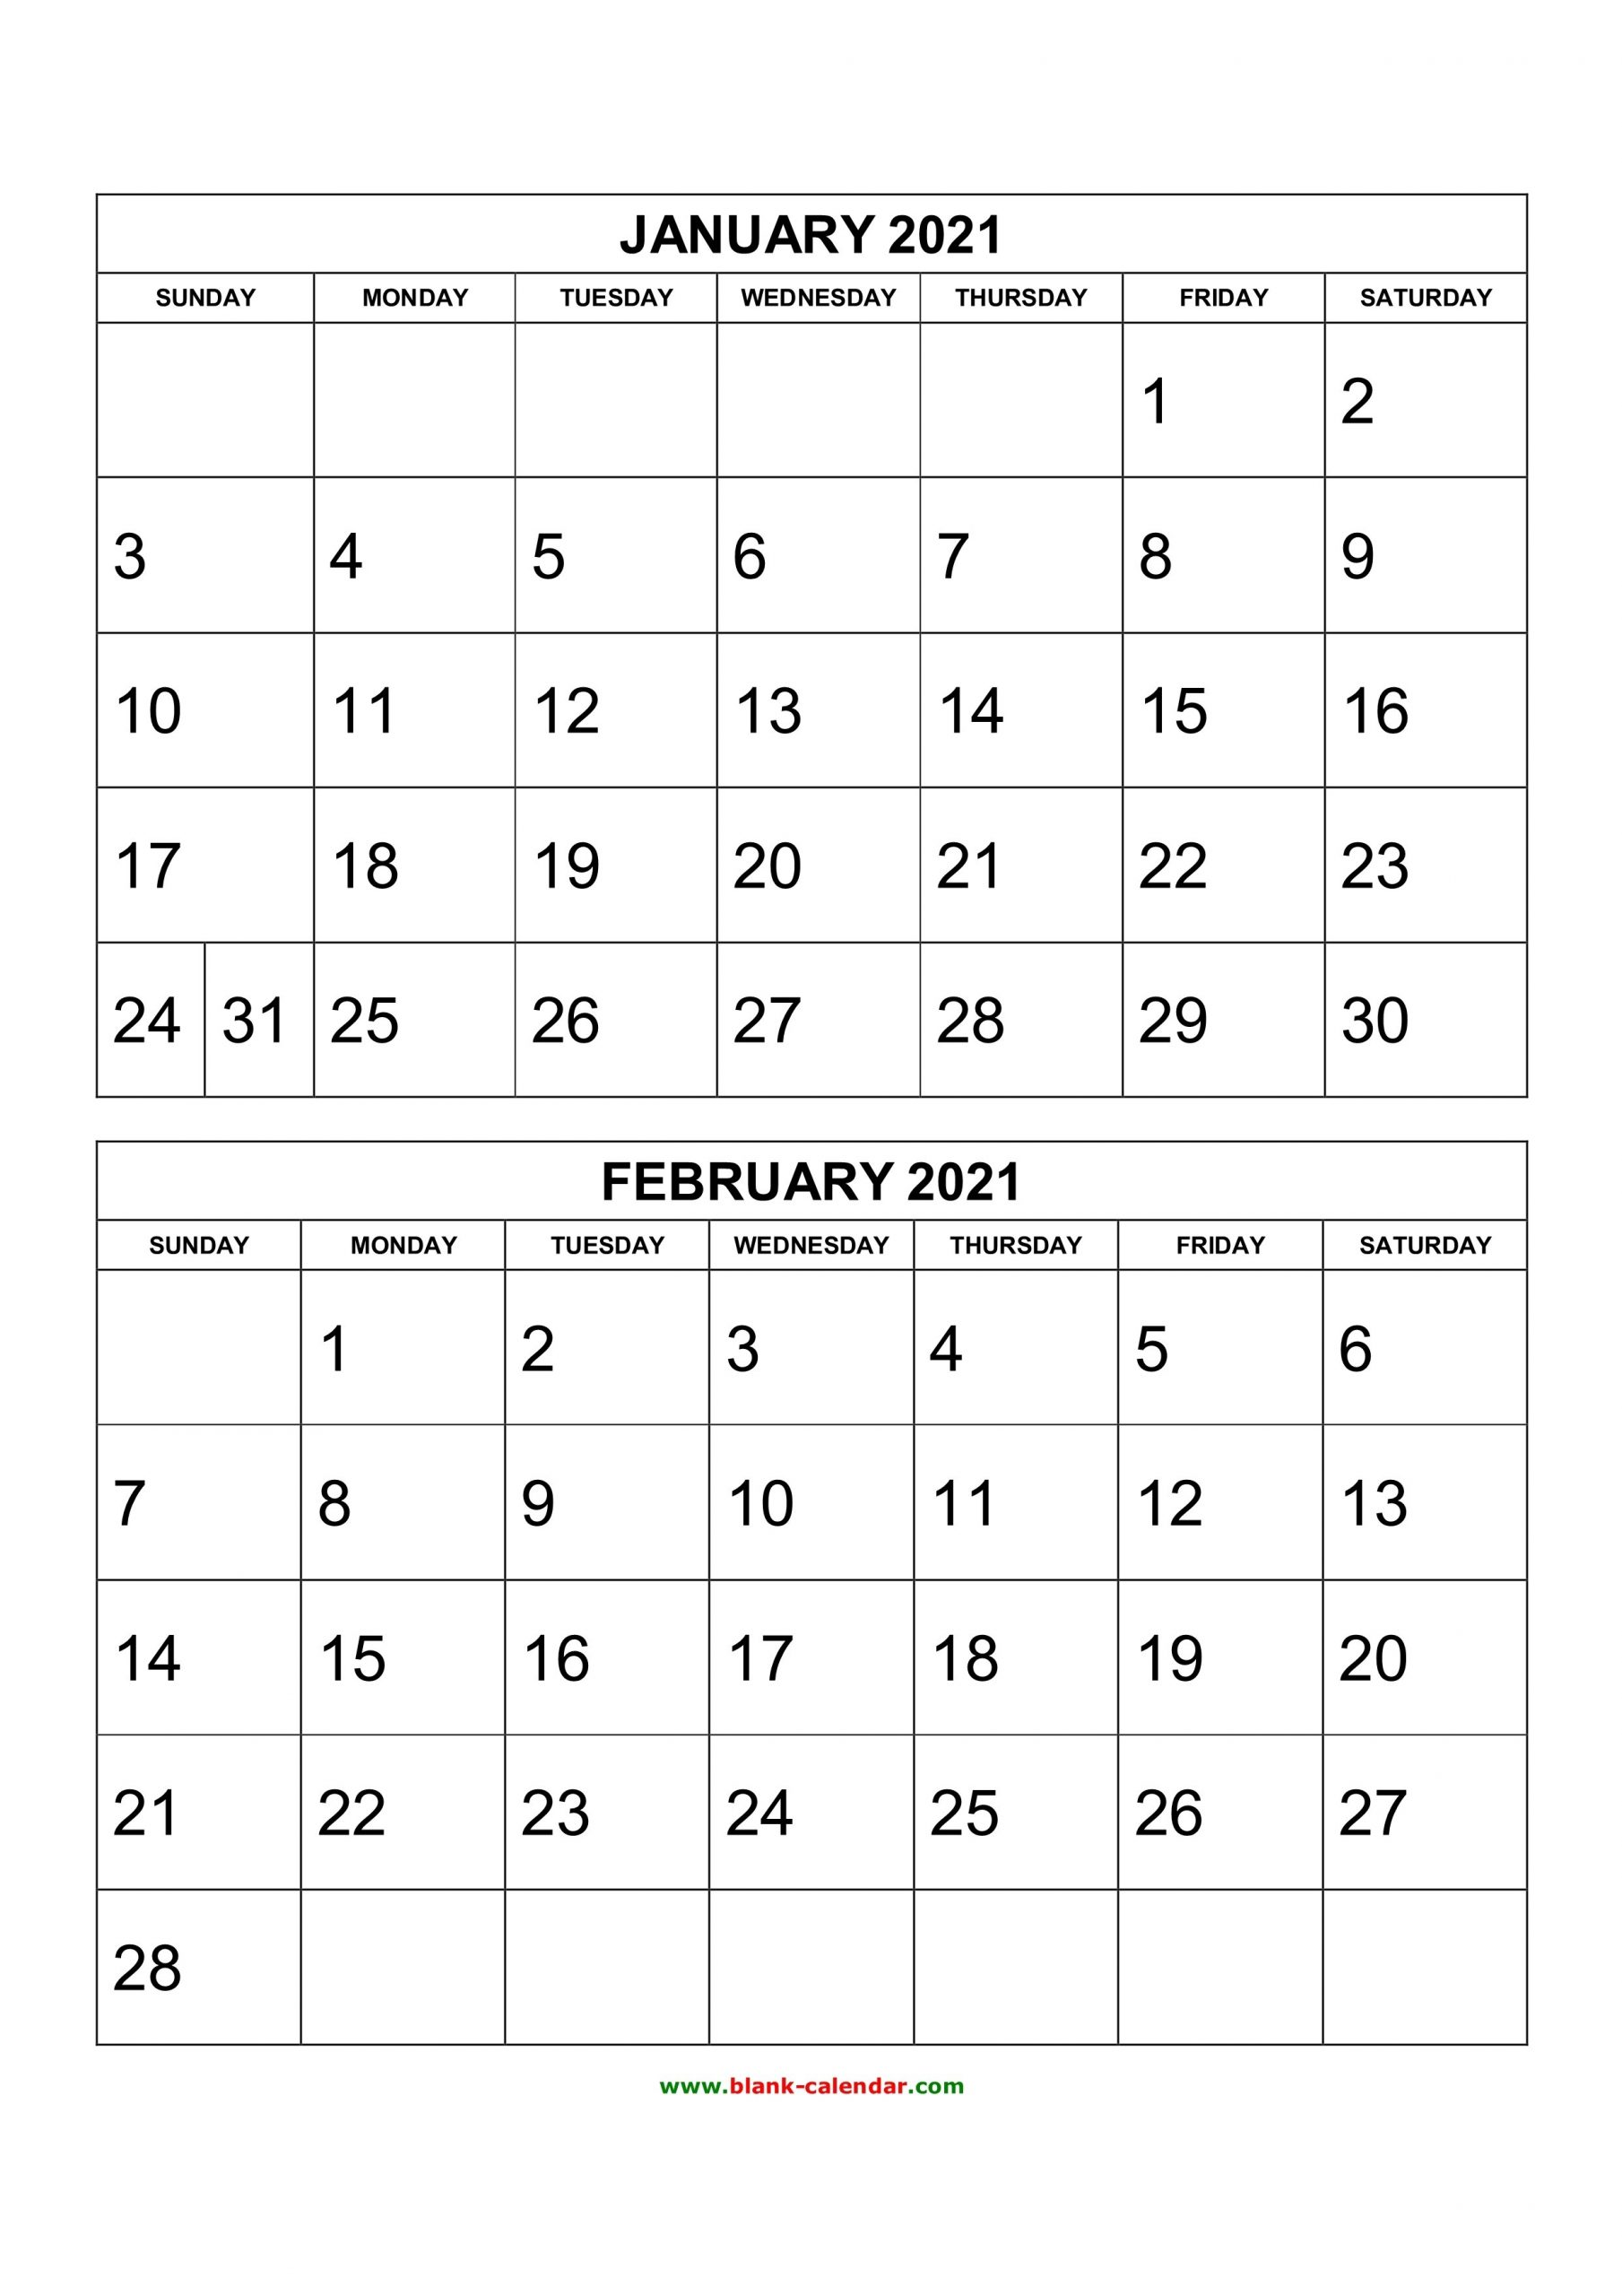 Free Printable 2020 Two Months Per Page Calendars   Example Calendar Printable for Calendar Templates 3 Months Per Page 2021